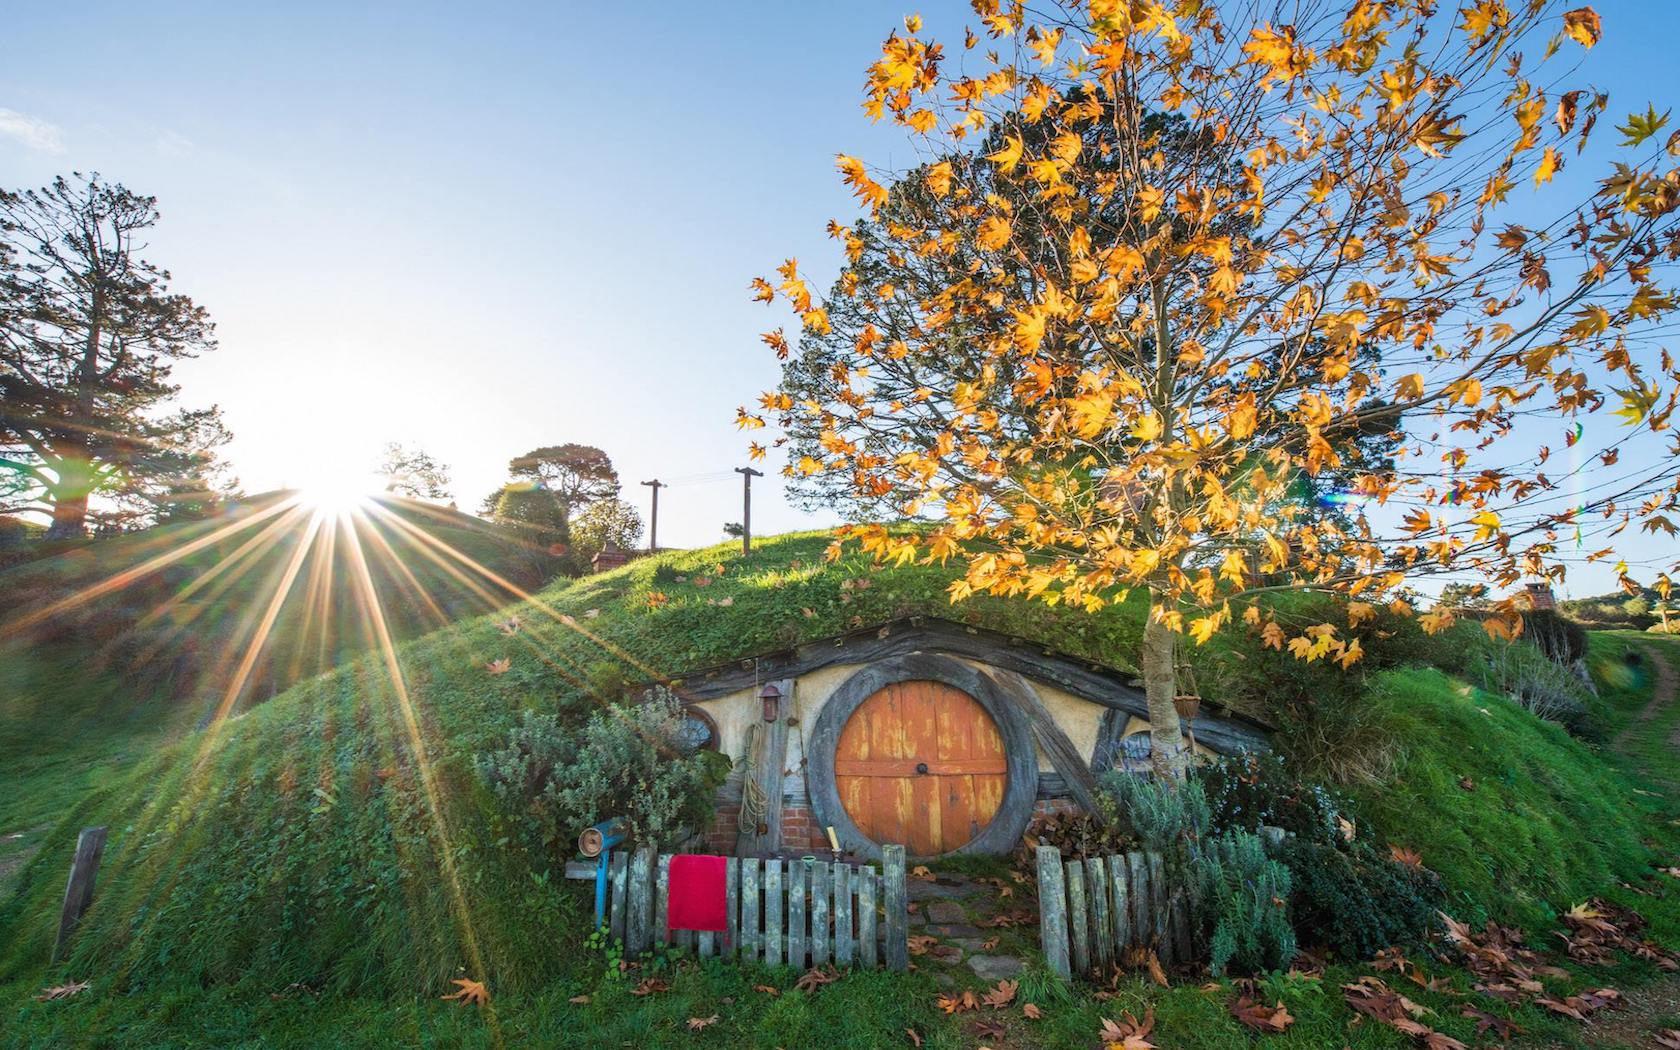 Live Out Your Lord Of The Rings Fantasy At Hobbiton In New Zealand